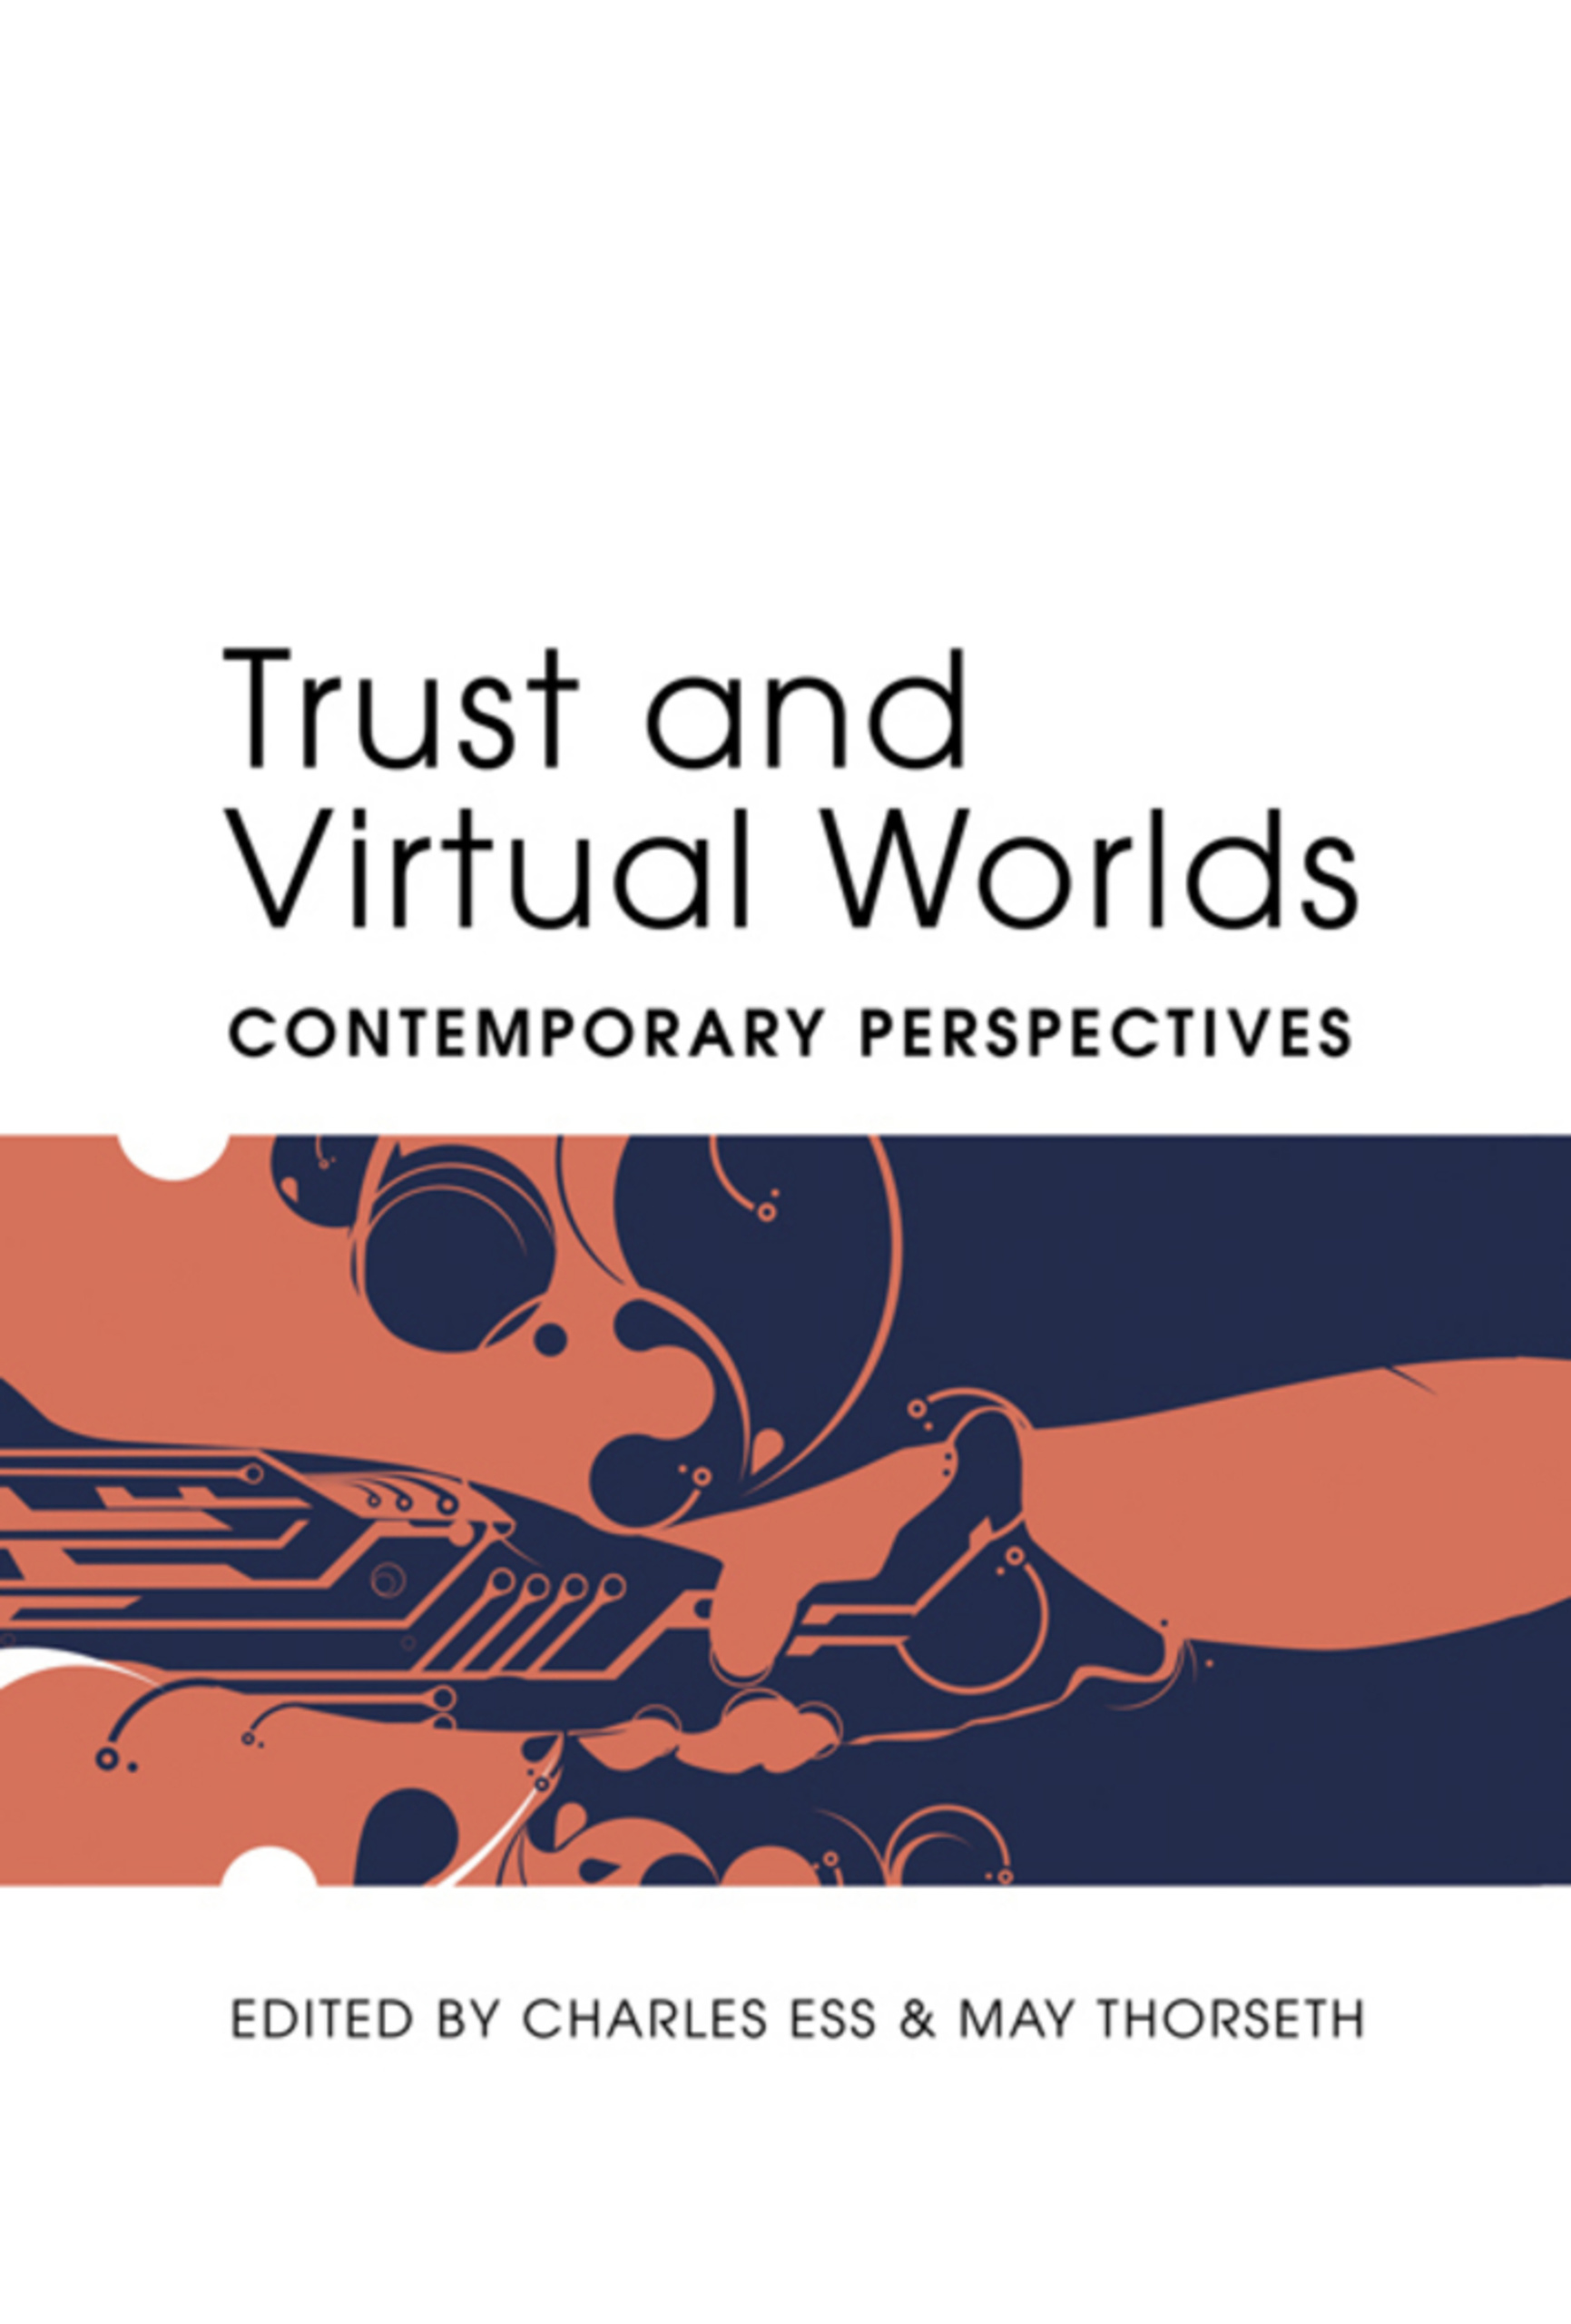 Title: Trust and Virtual Worlds